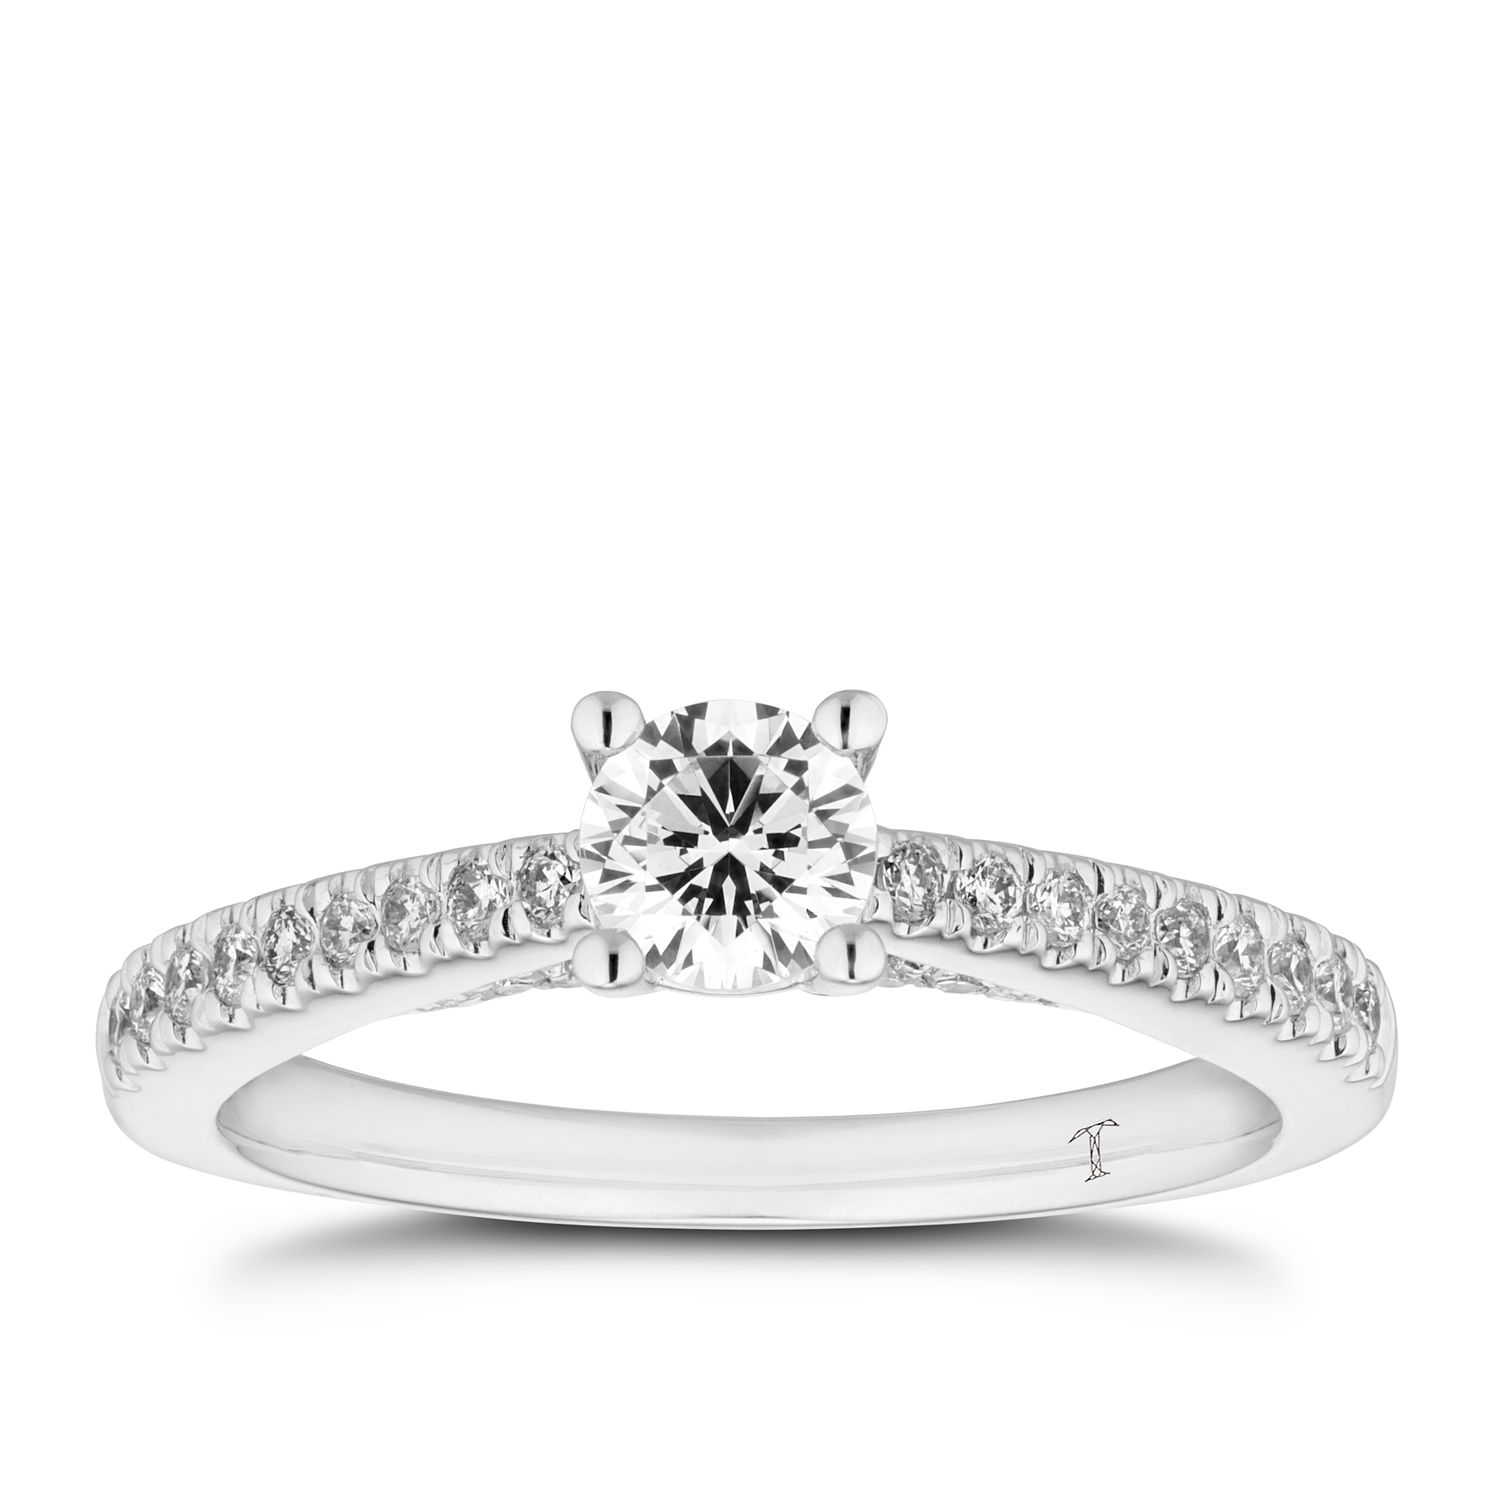 Tolkowsky 18ct White Gold 1/2ct Diamond Solitaire Ring - Product number 5889596